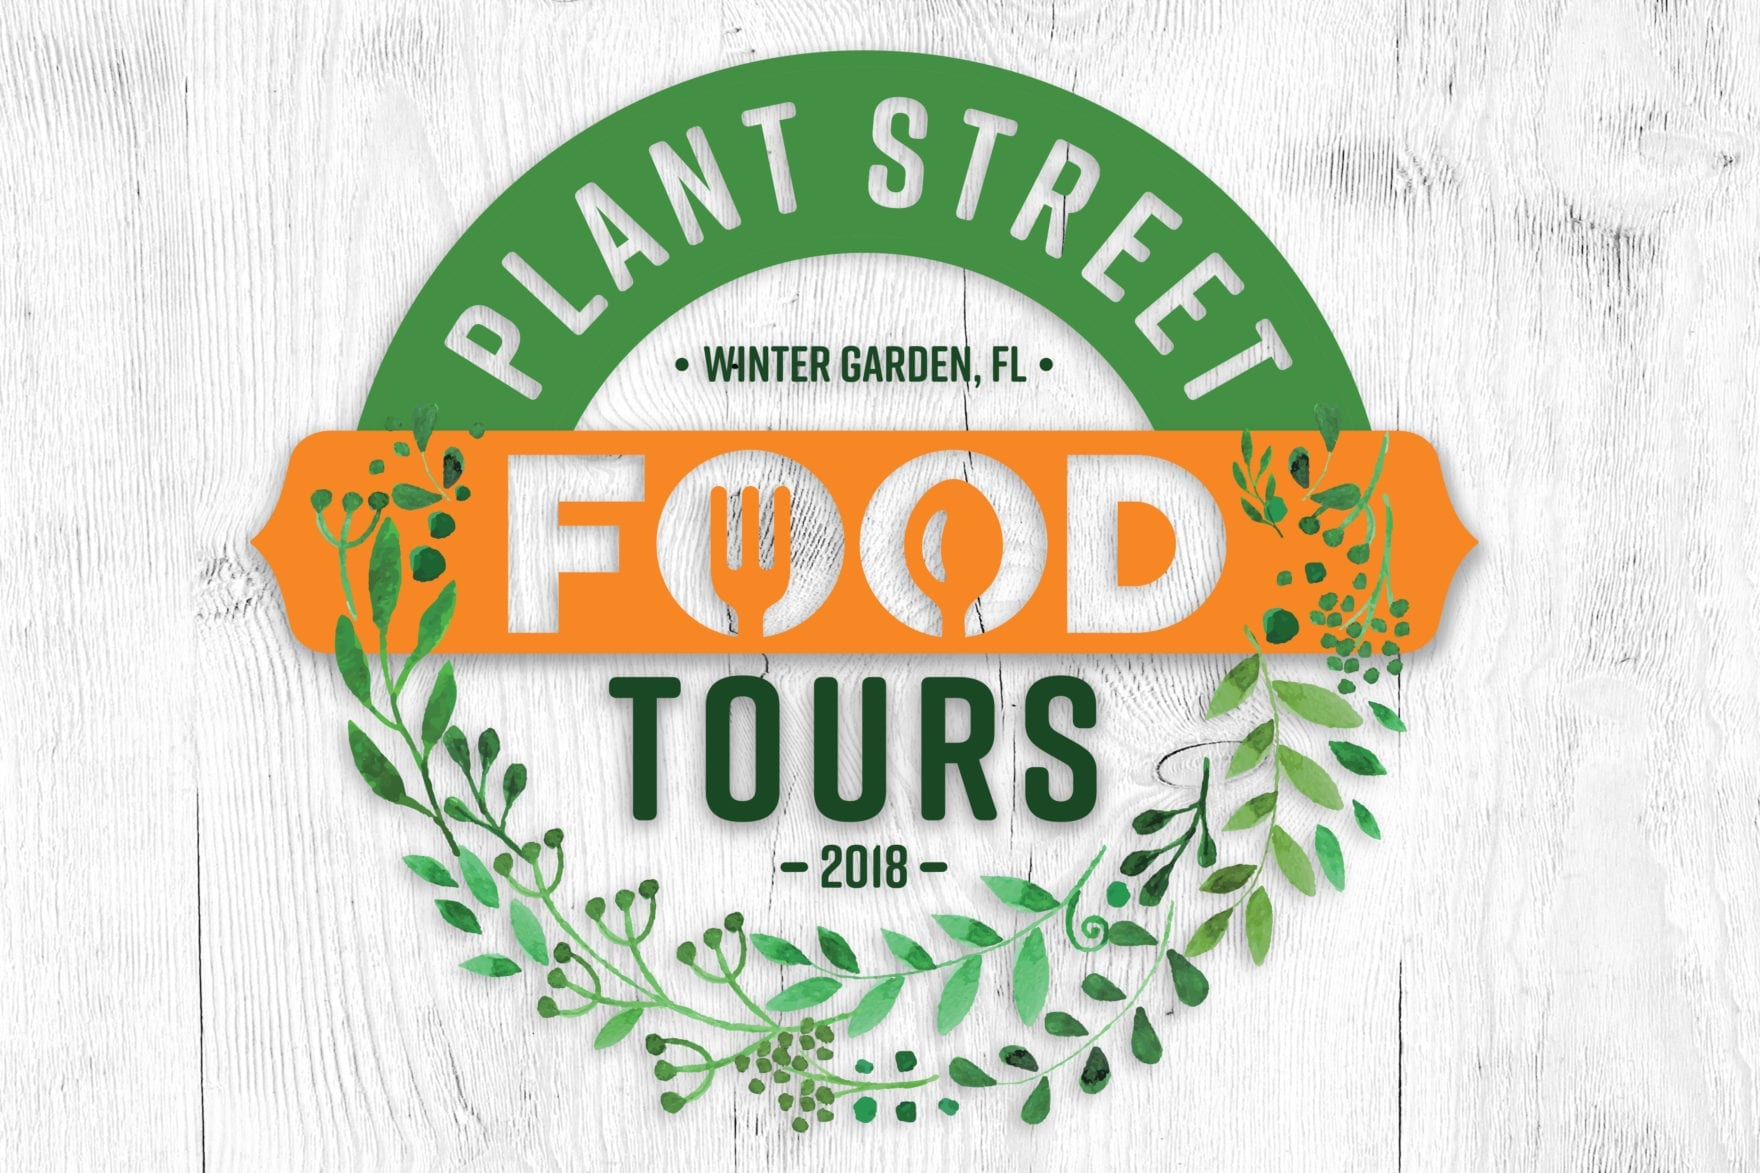 Plant Street Food Tours logo, designed by Canyon Creative